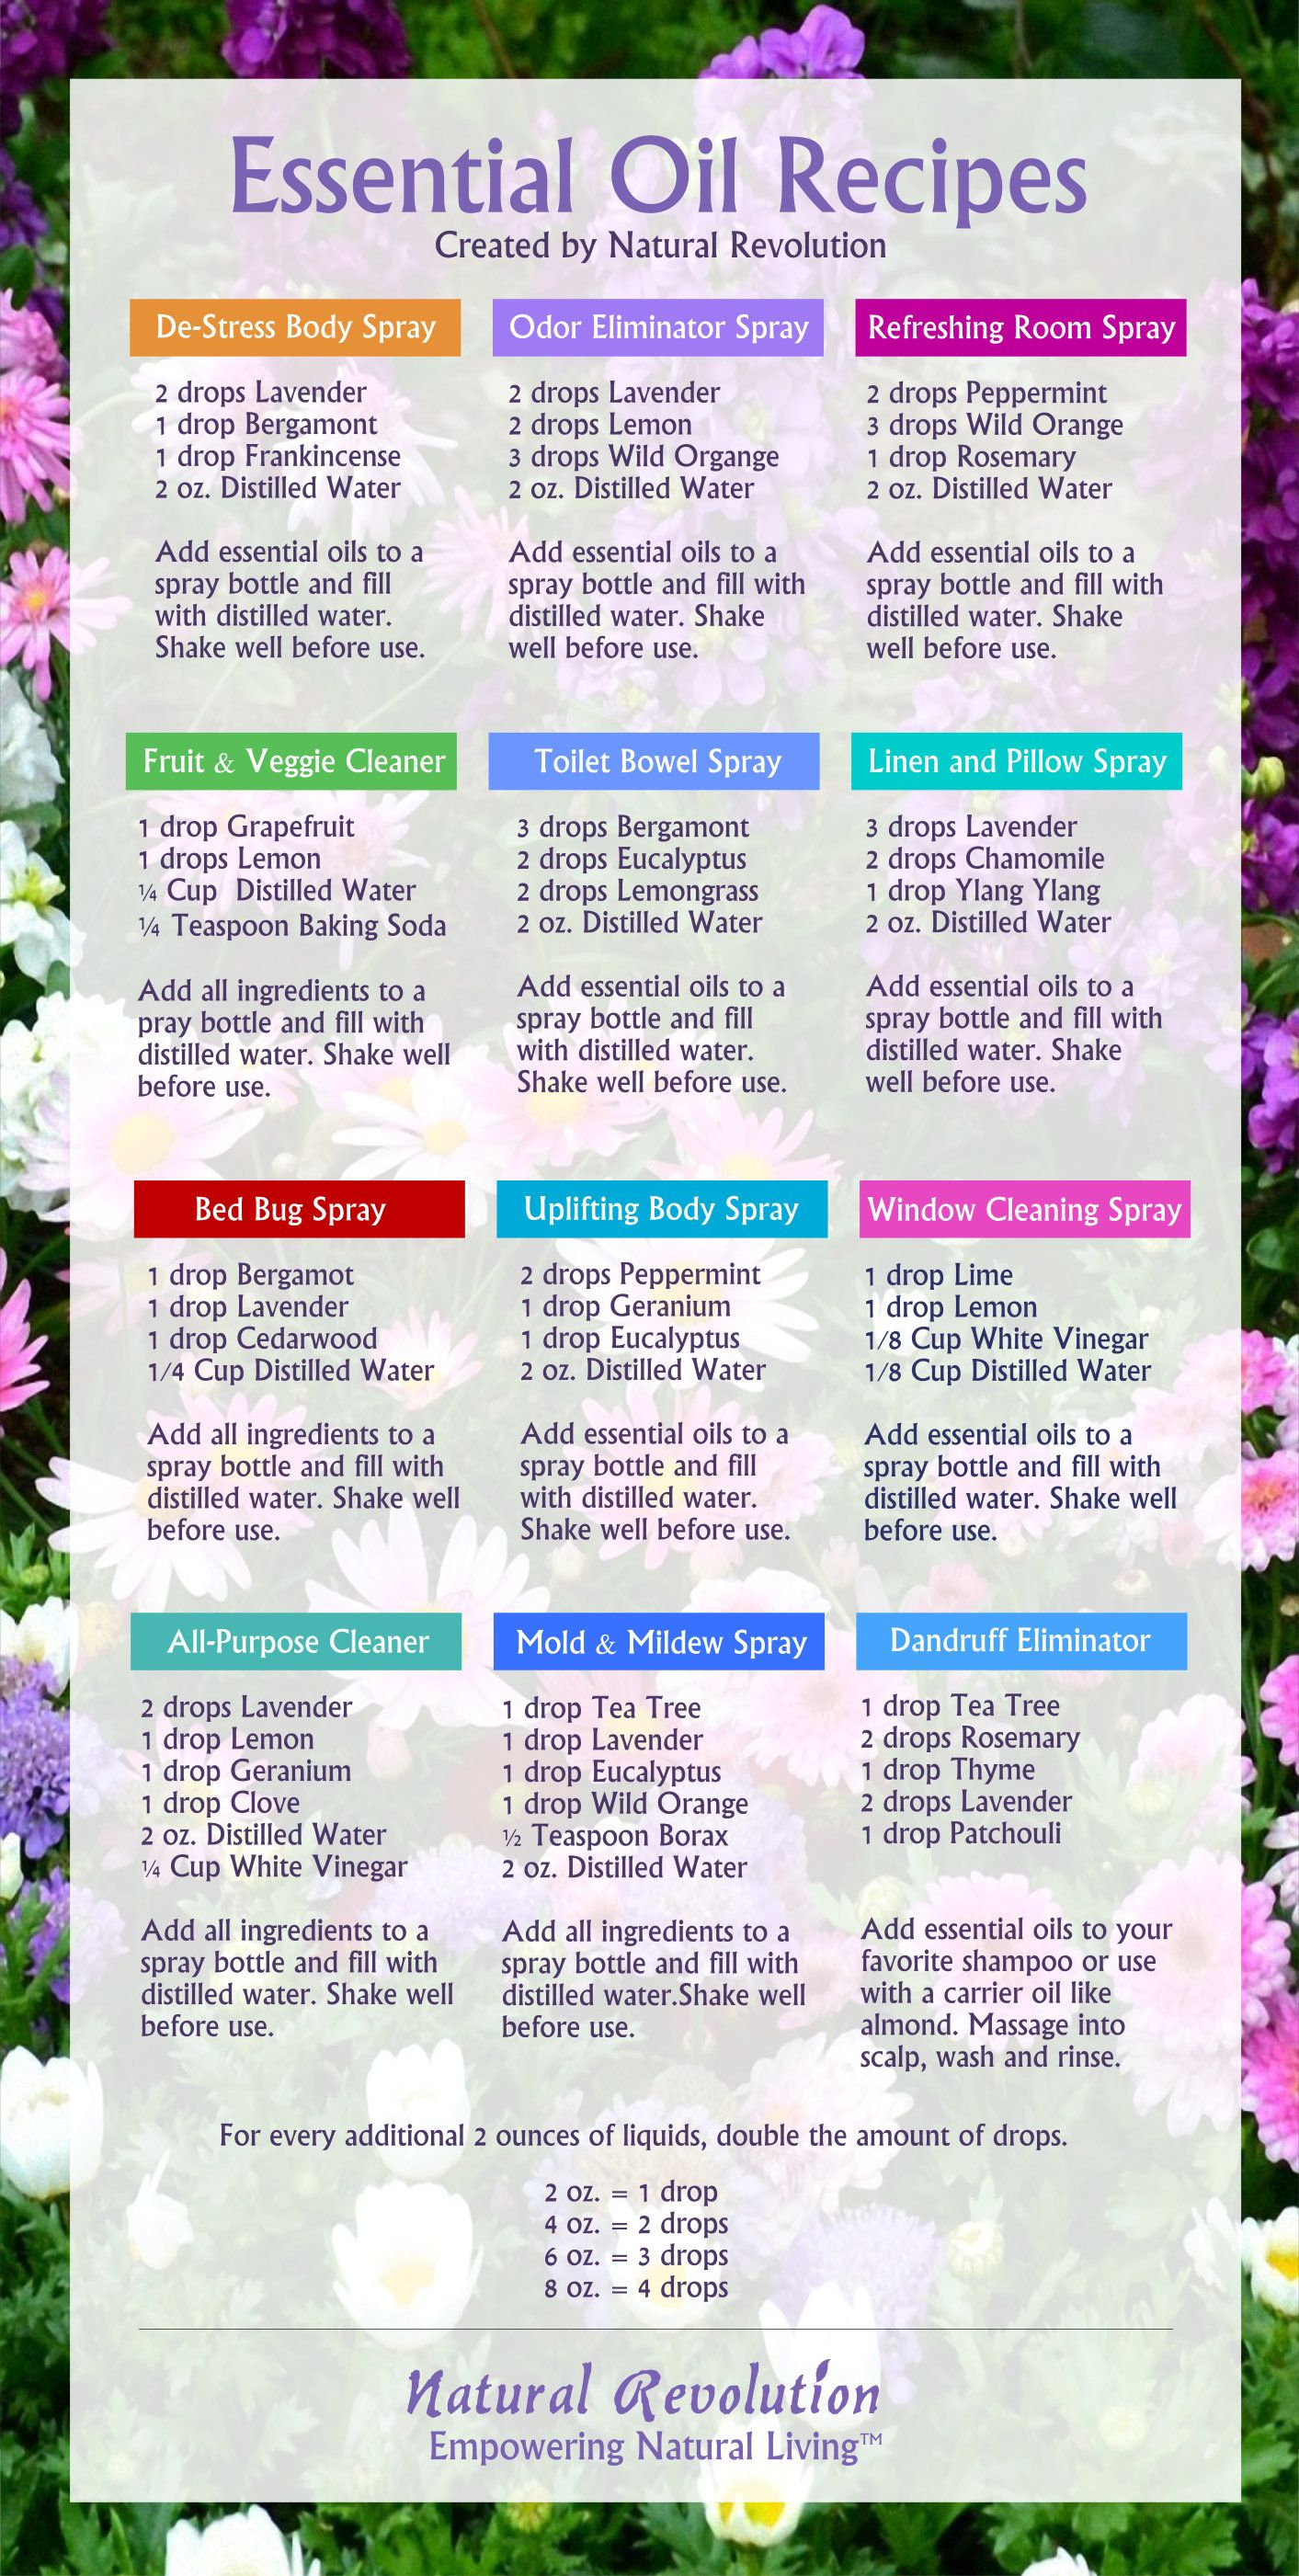 The Ultimate Essential Oils Guide Therapeutic Uses Recipes Safety